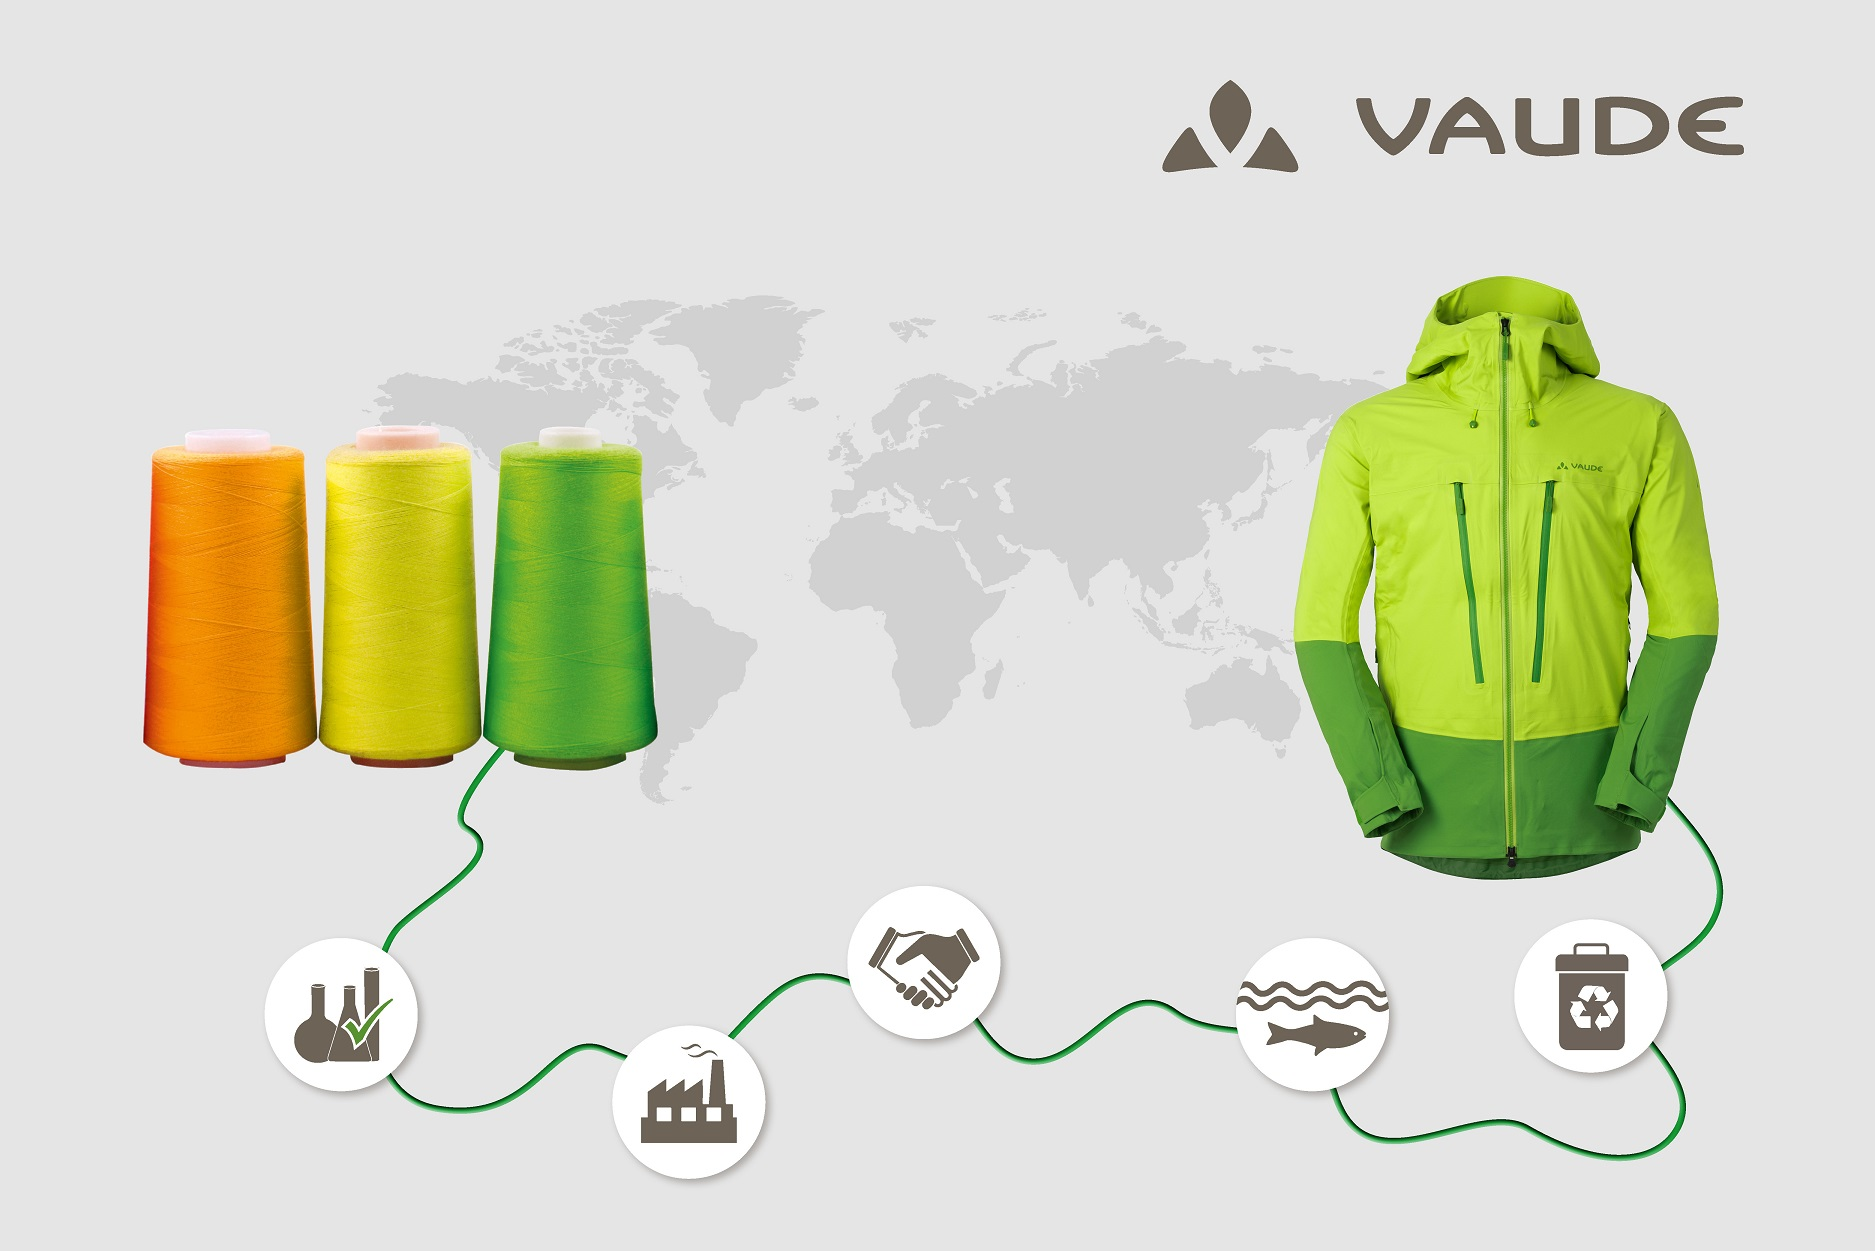 competitive price 3620d 6eca1 VAUDE Global Responsibility Down to the Last Detail ...